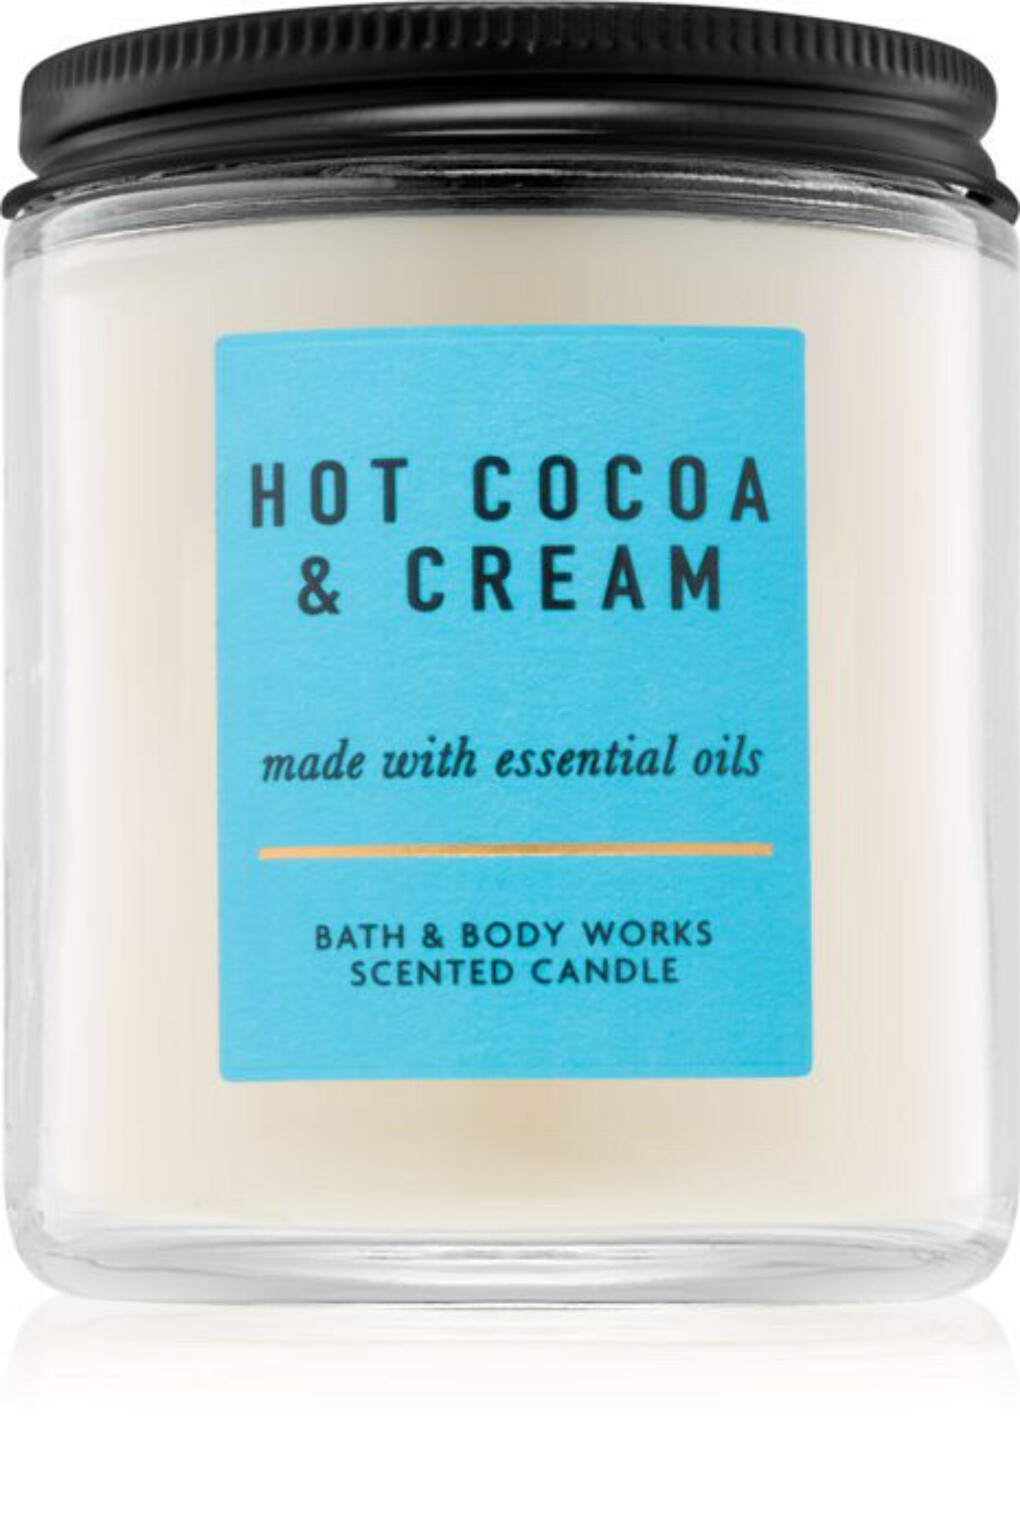 Bath & Body Works aroma candle